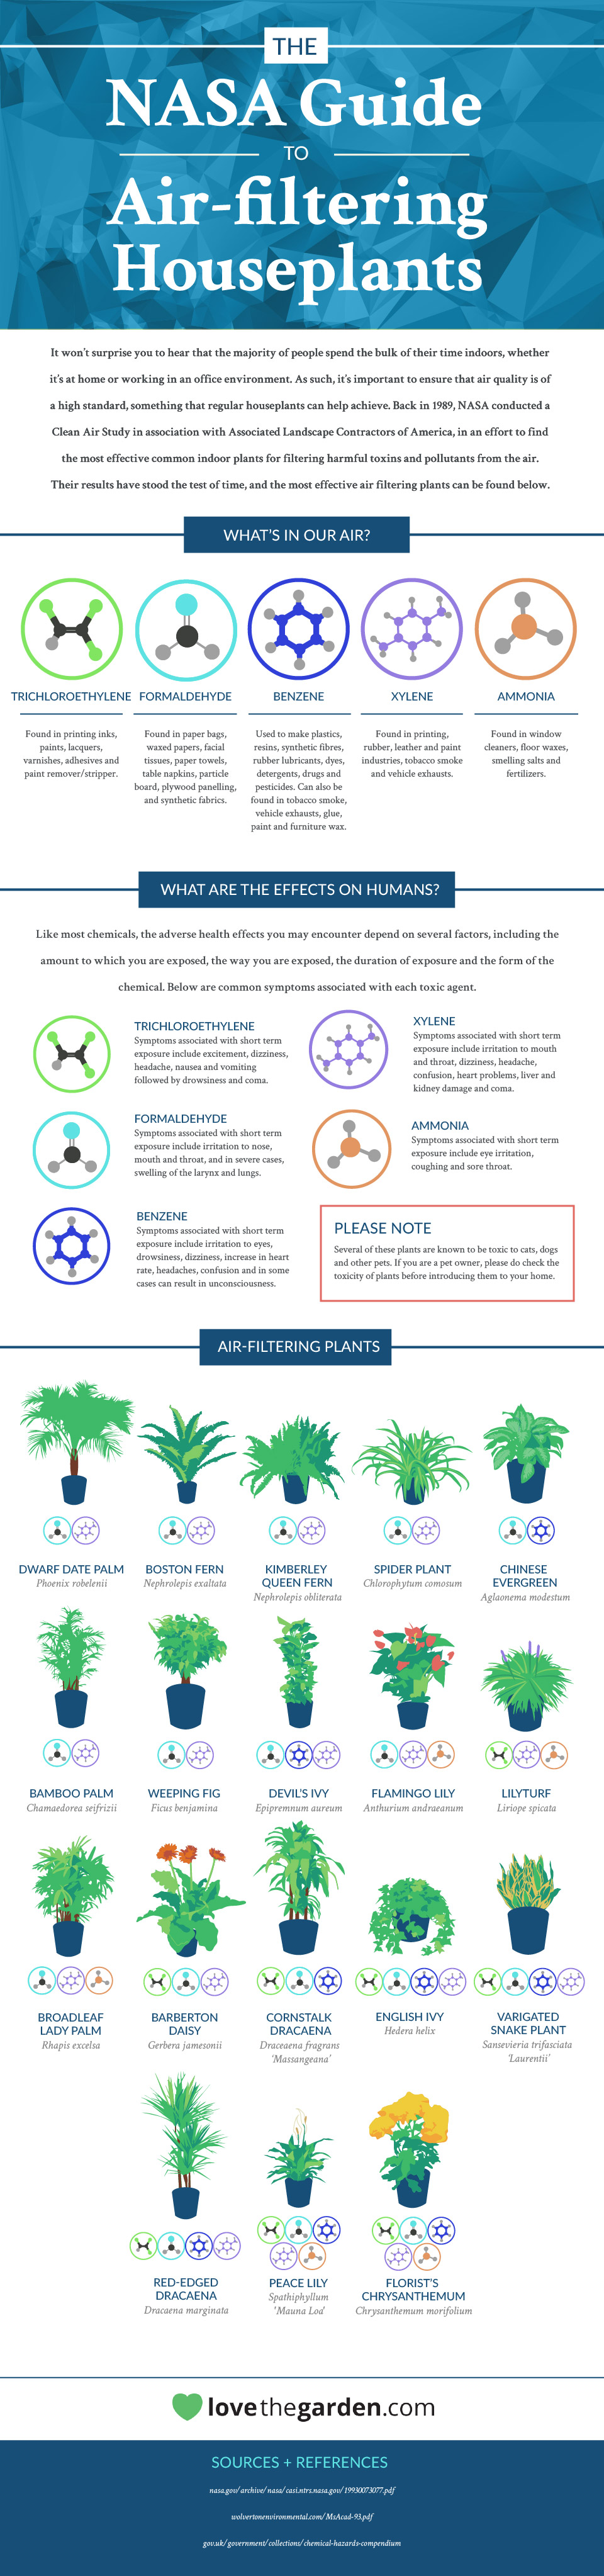 Infographic luchtzuiverende planten - Green is all